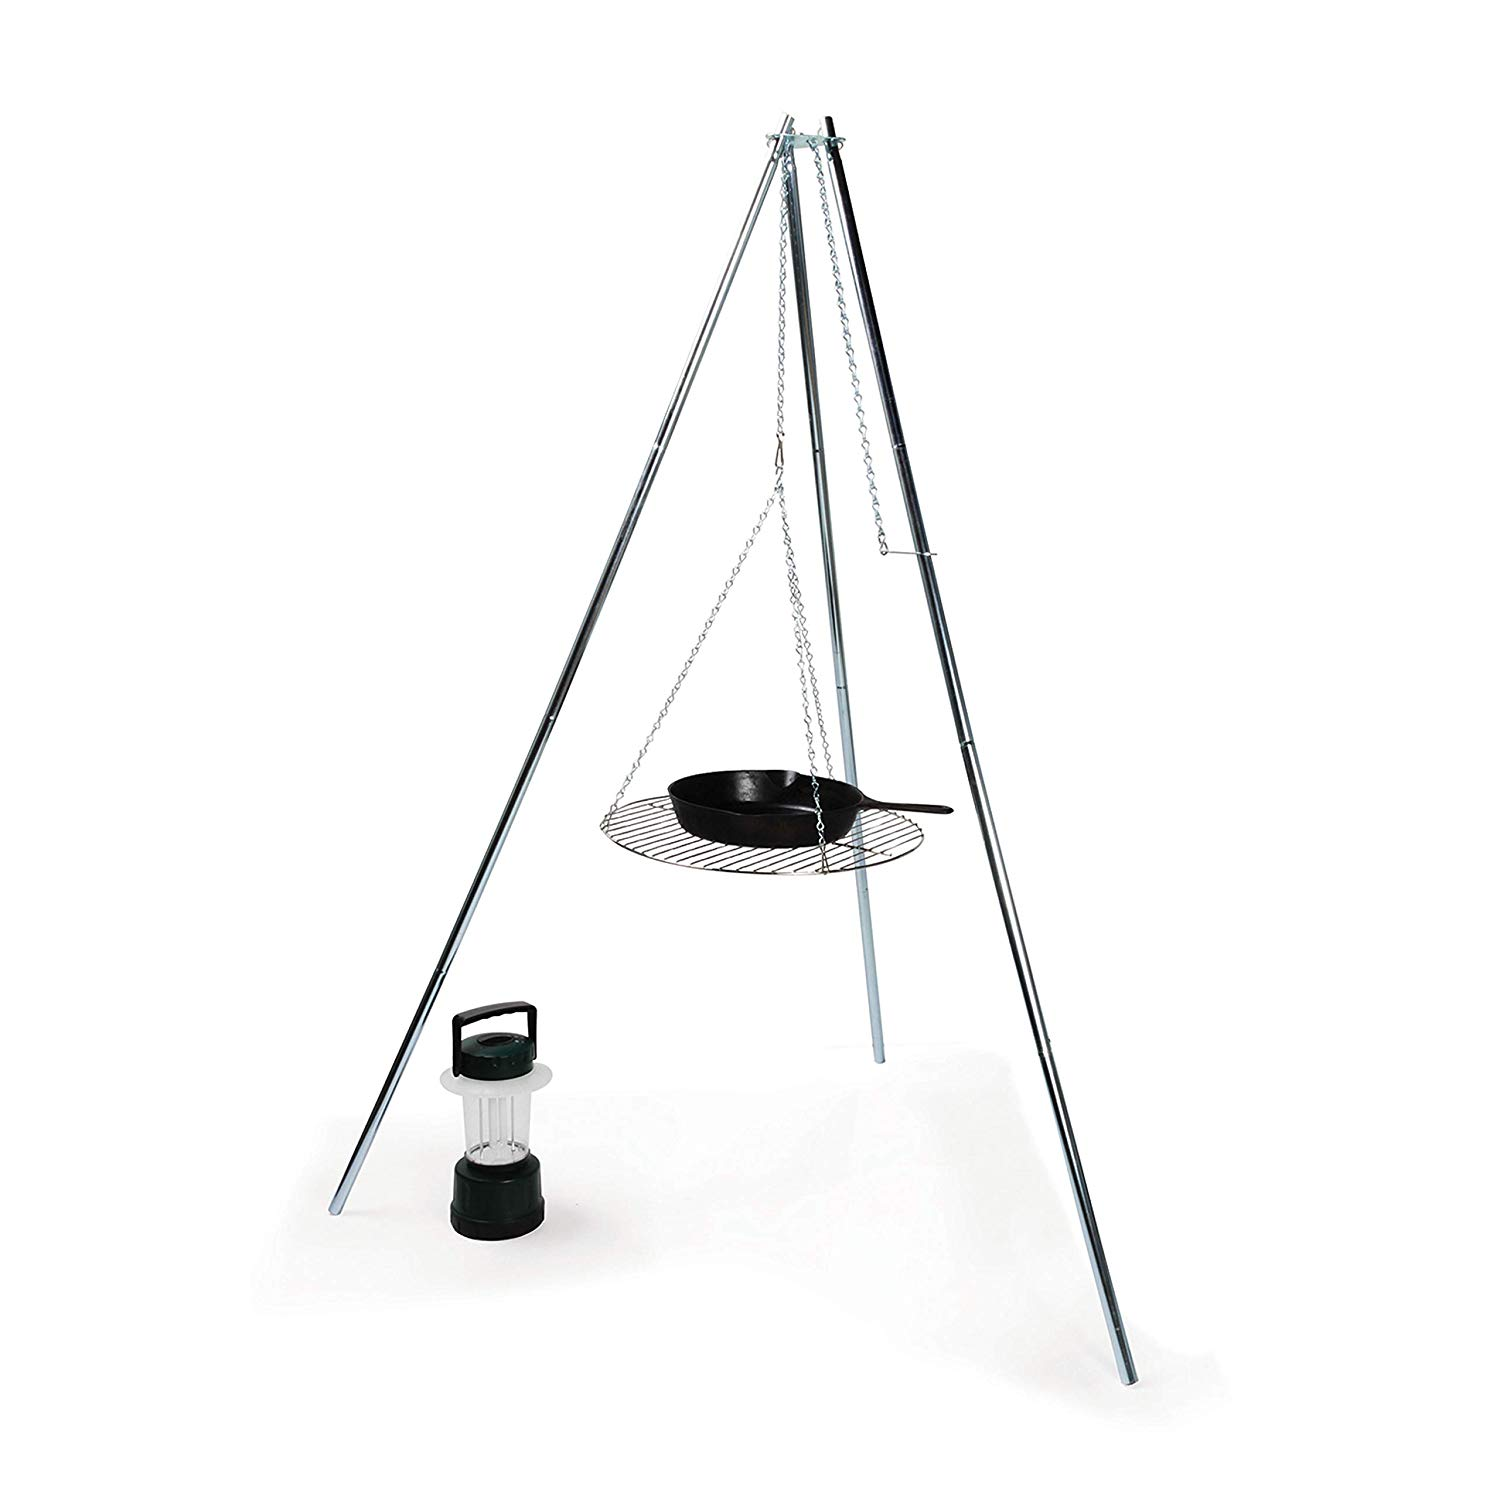 Top 10 Best Campfire Tripods For Camping 2021 Reviews 6